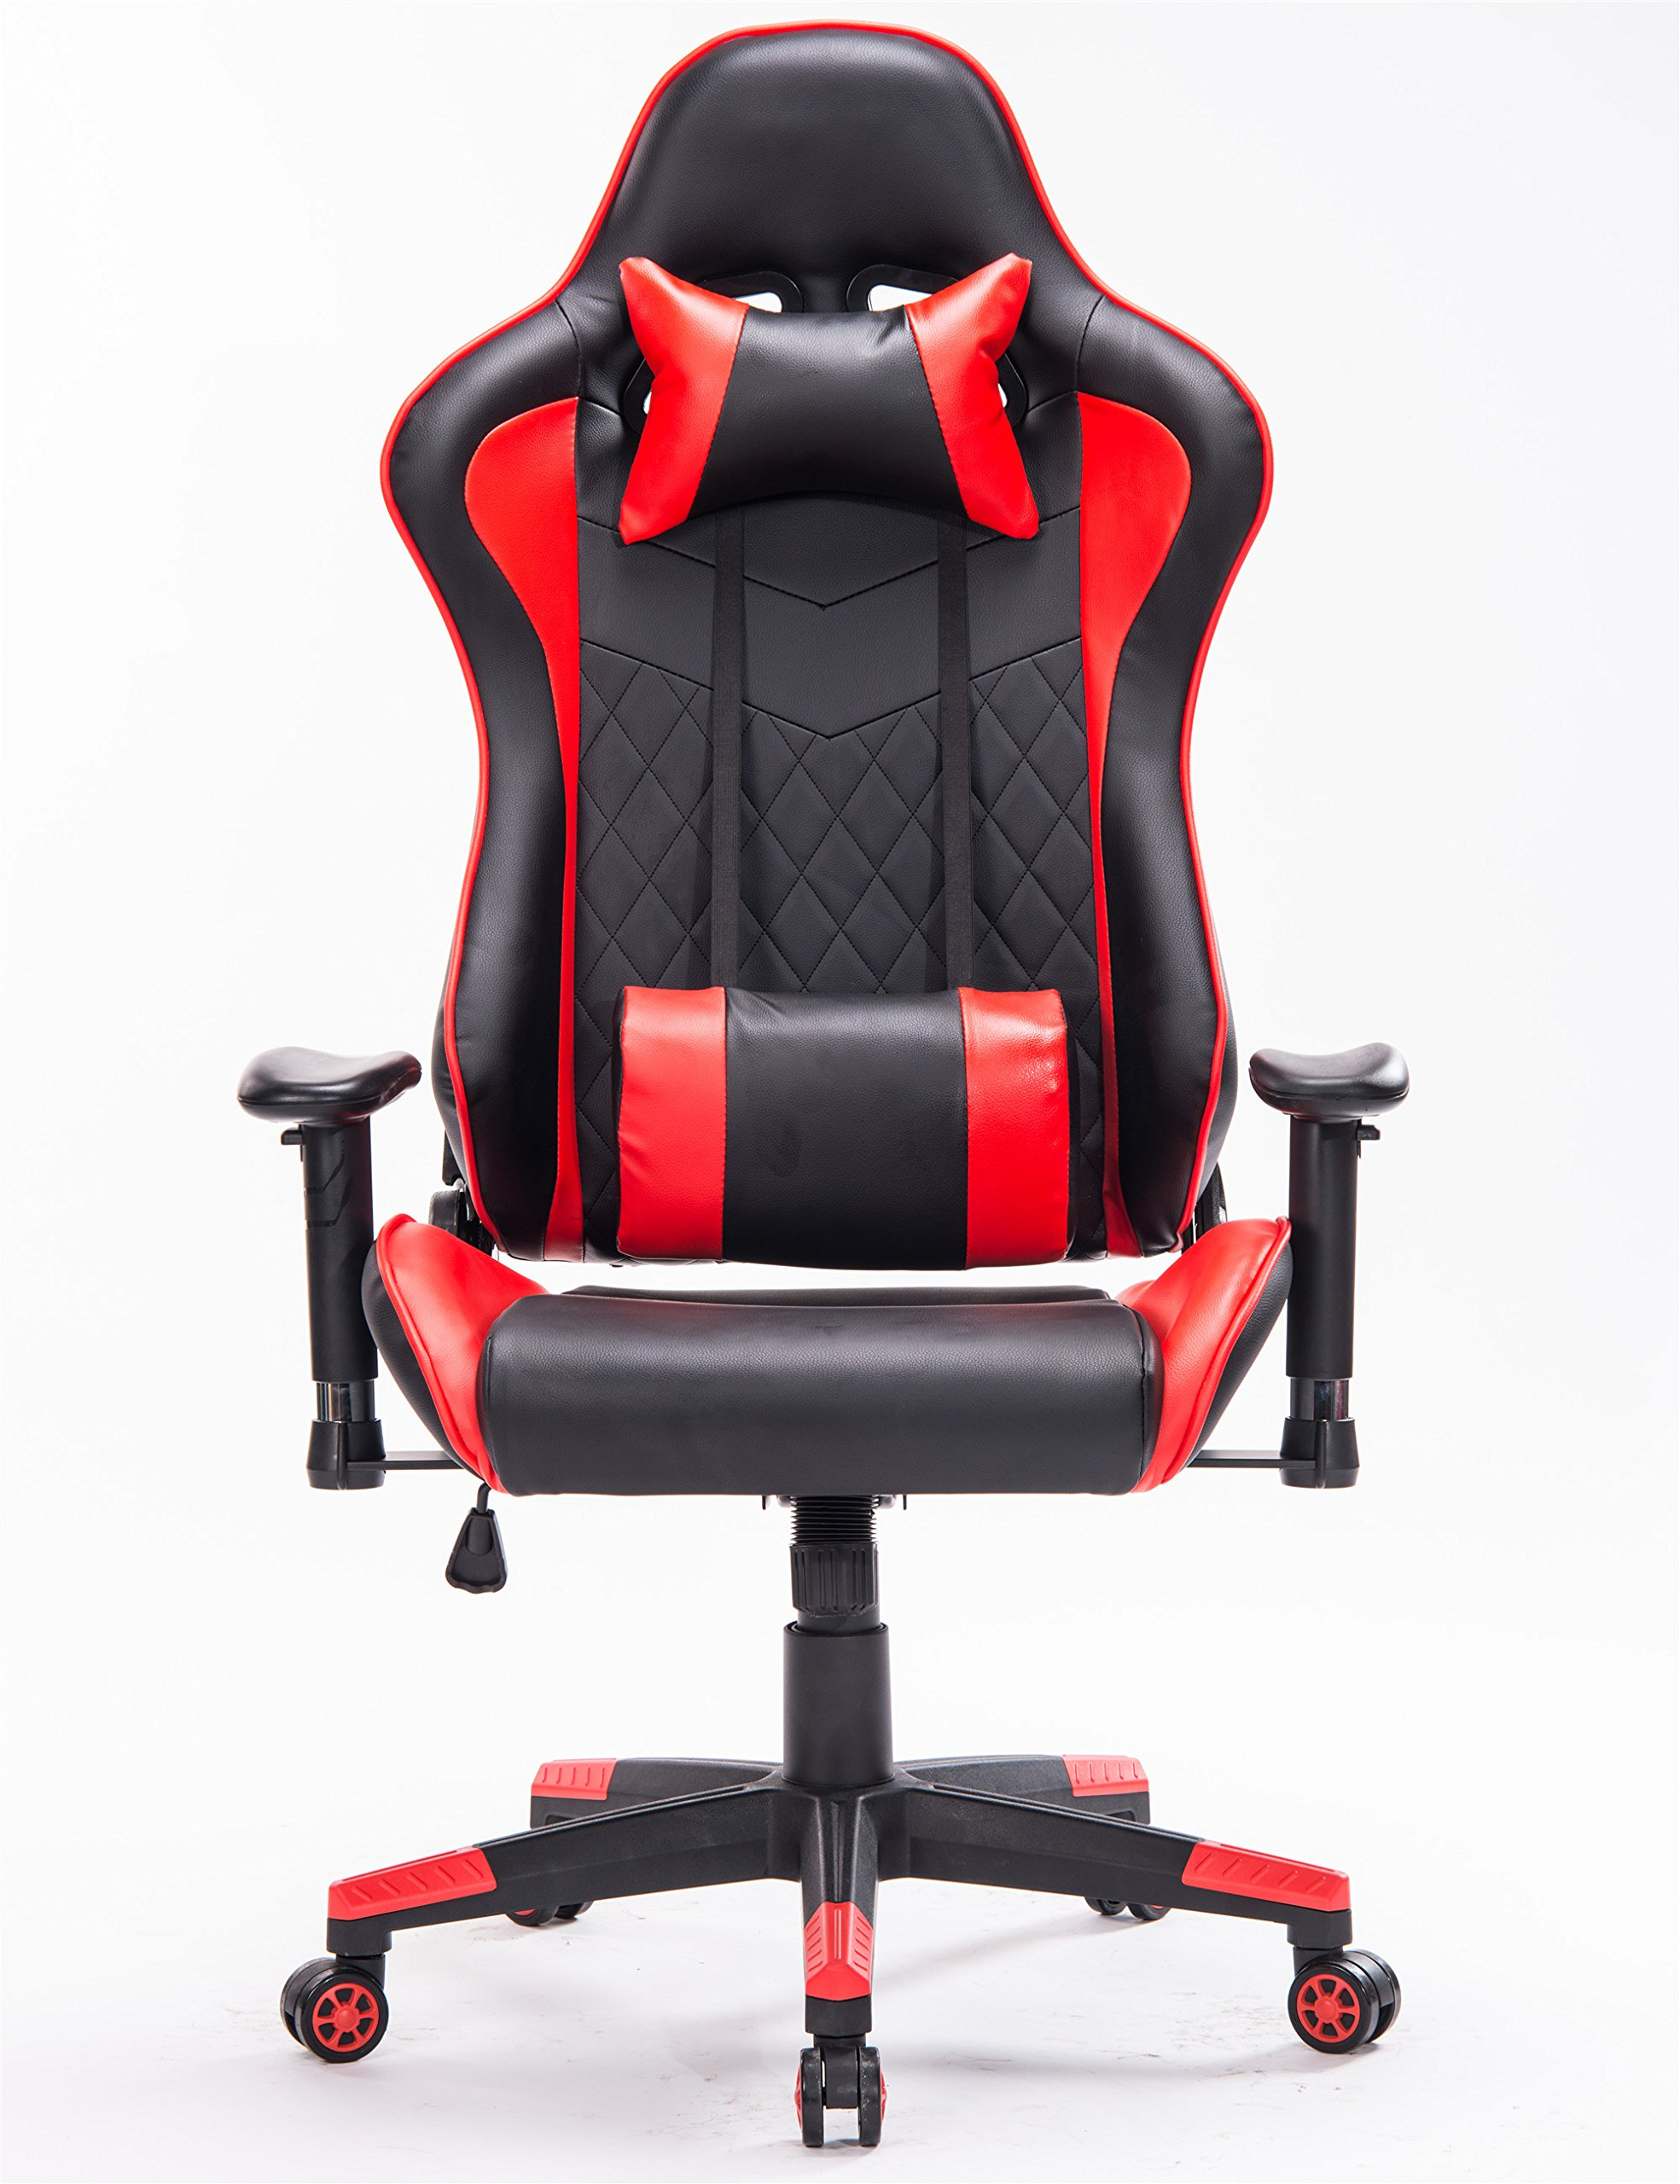 Ergonomic Gaming Chair PC Game Computer Office Chair with Footrest (Red/Black,1)